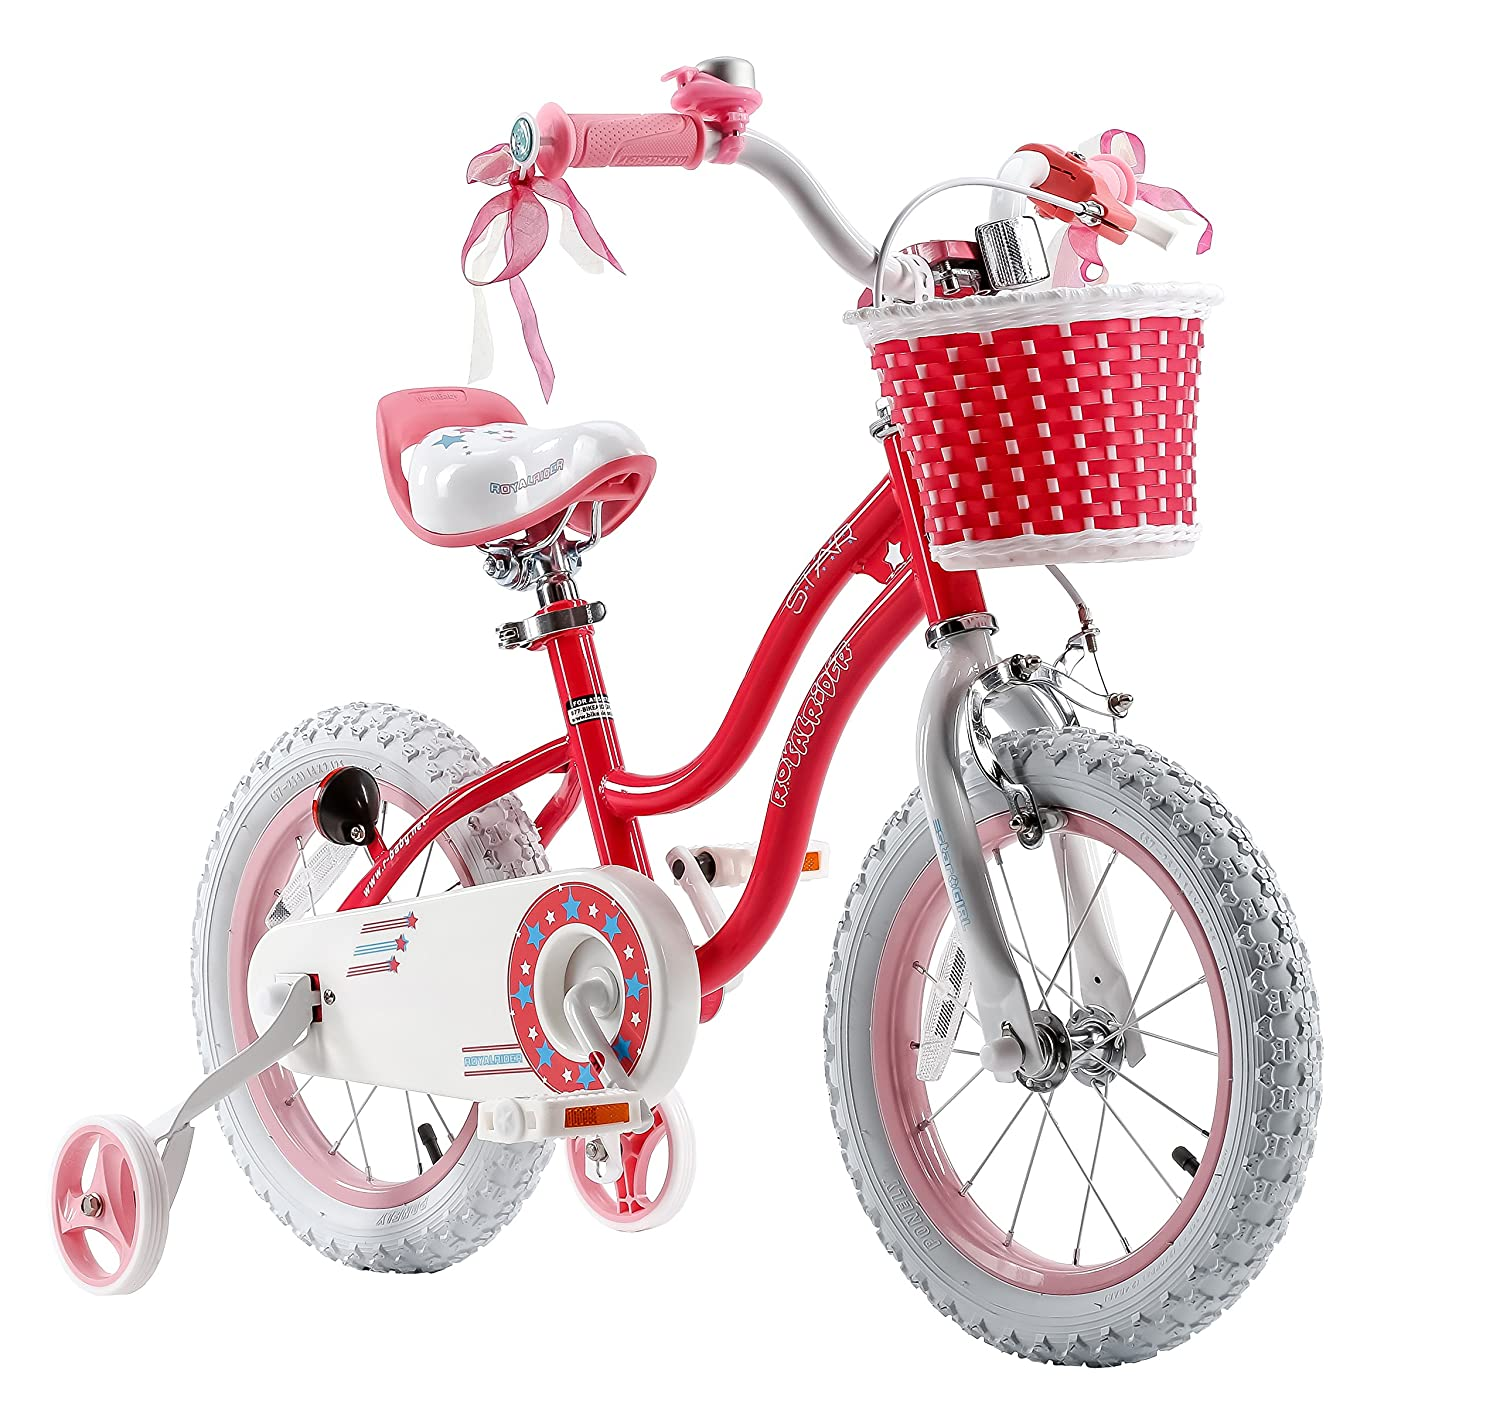 RoyablBaby Stargirl Girl s Bike with Training Wheels or Kickstand